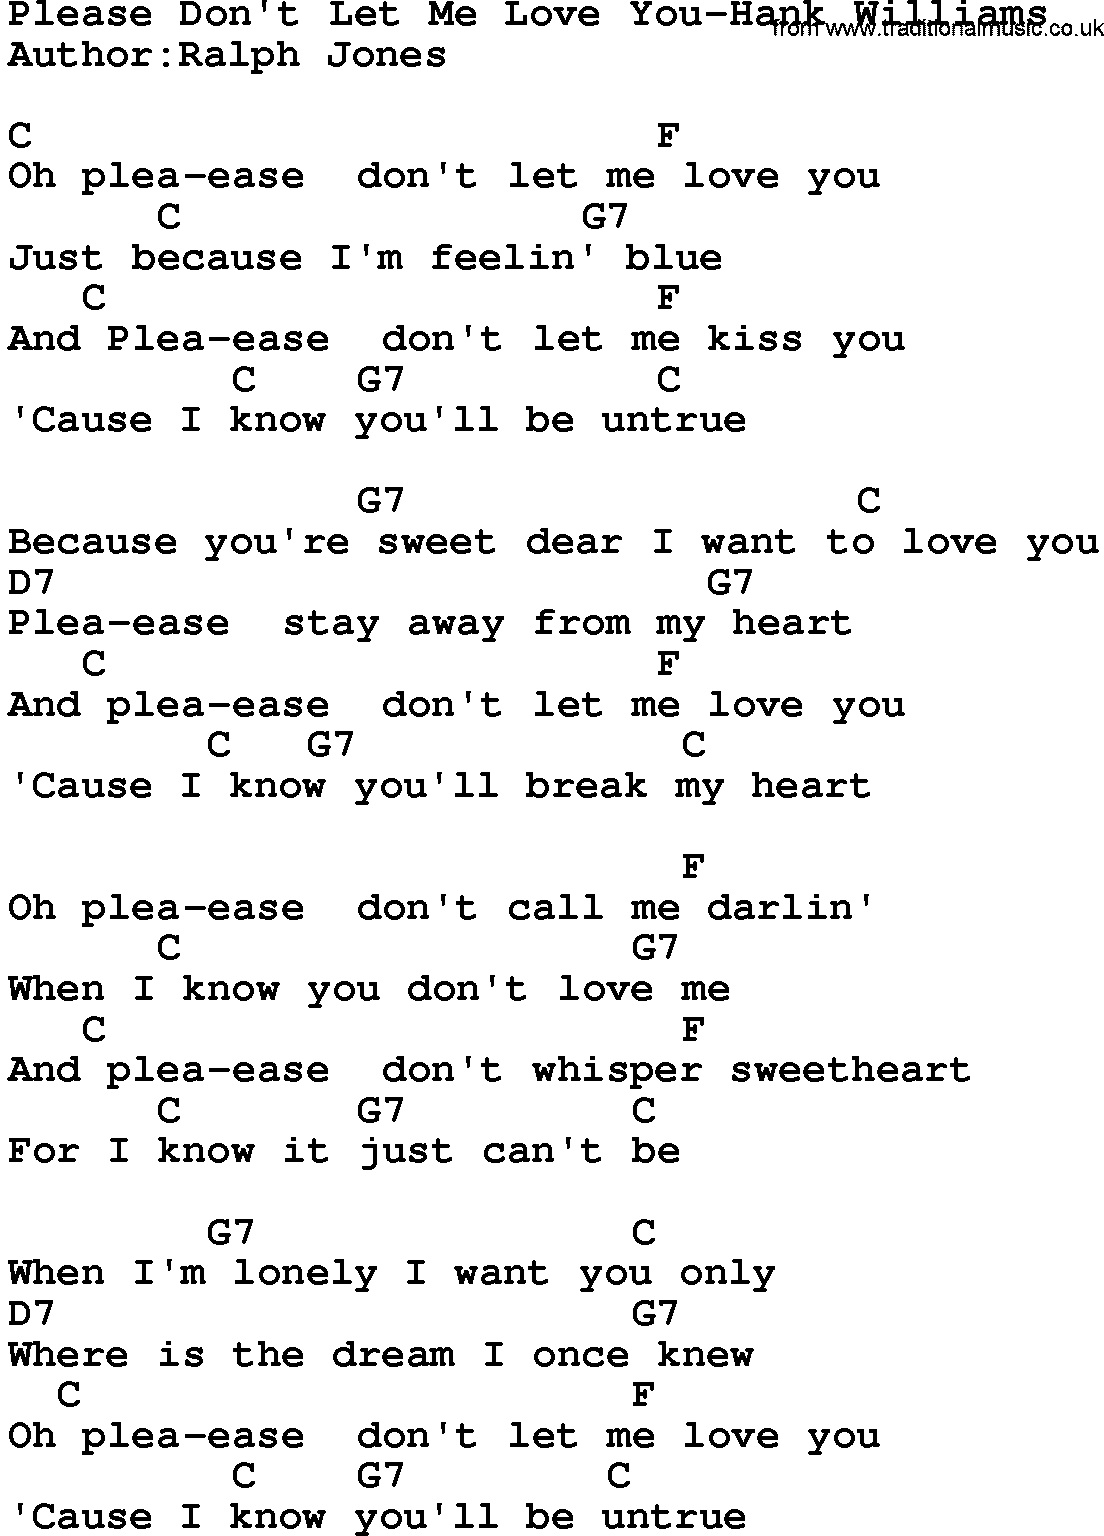 Country musicplease dont let me love you hank williams lyrics country musicplease dont let me love you hank williams lyrics and chords hexwebz Images